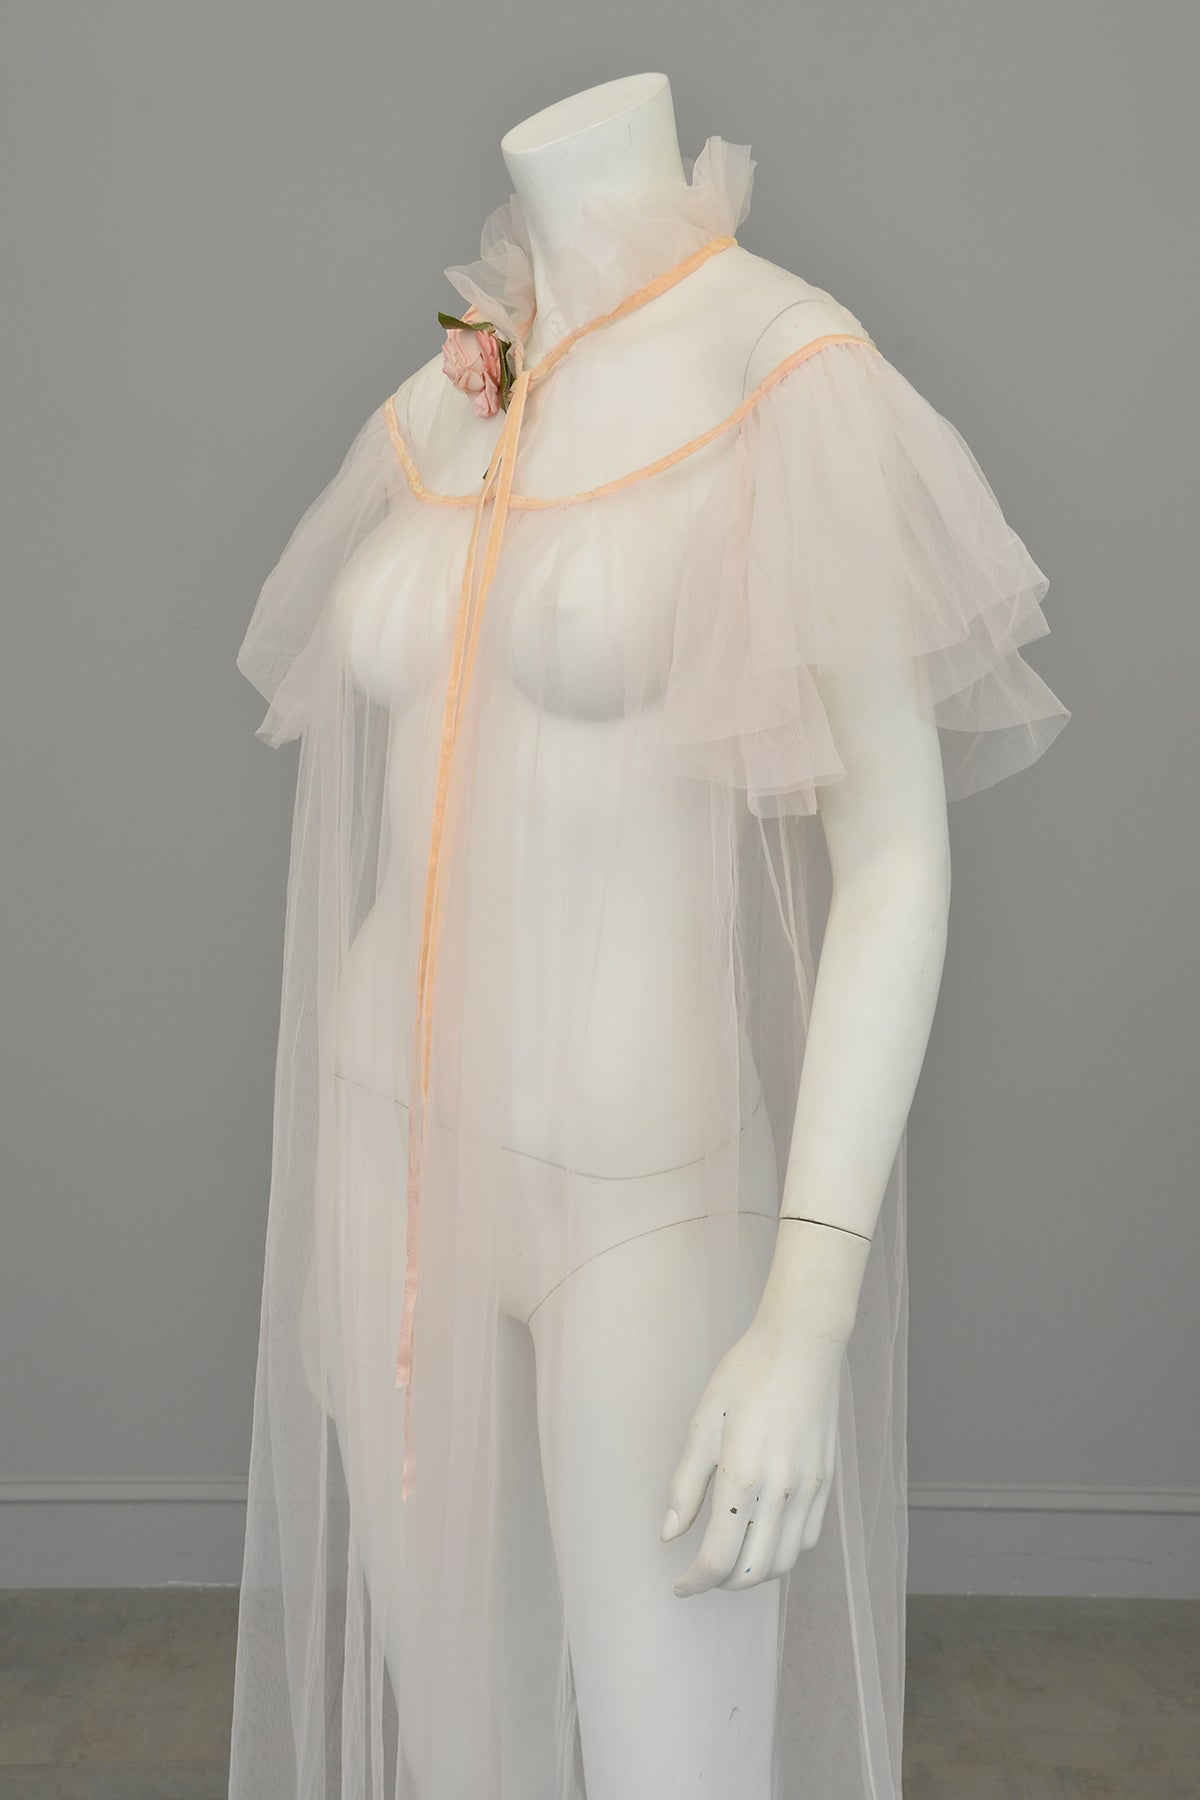 1950s 60s Ethereal Pink Mesh Flutter Sleeves Floaty Robe House Coat by Lady Leonora